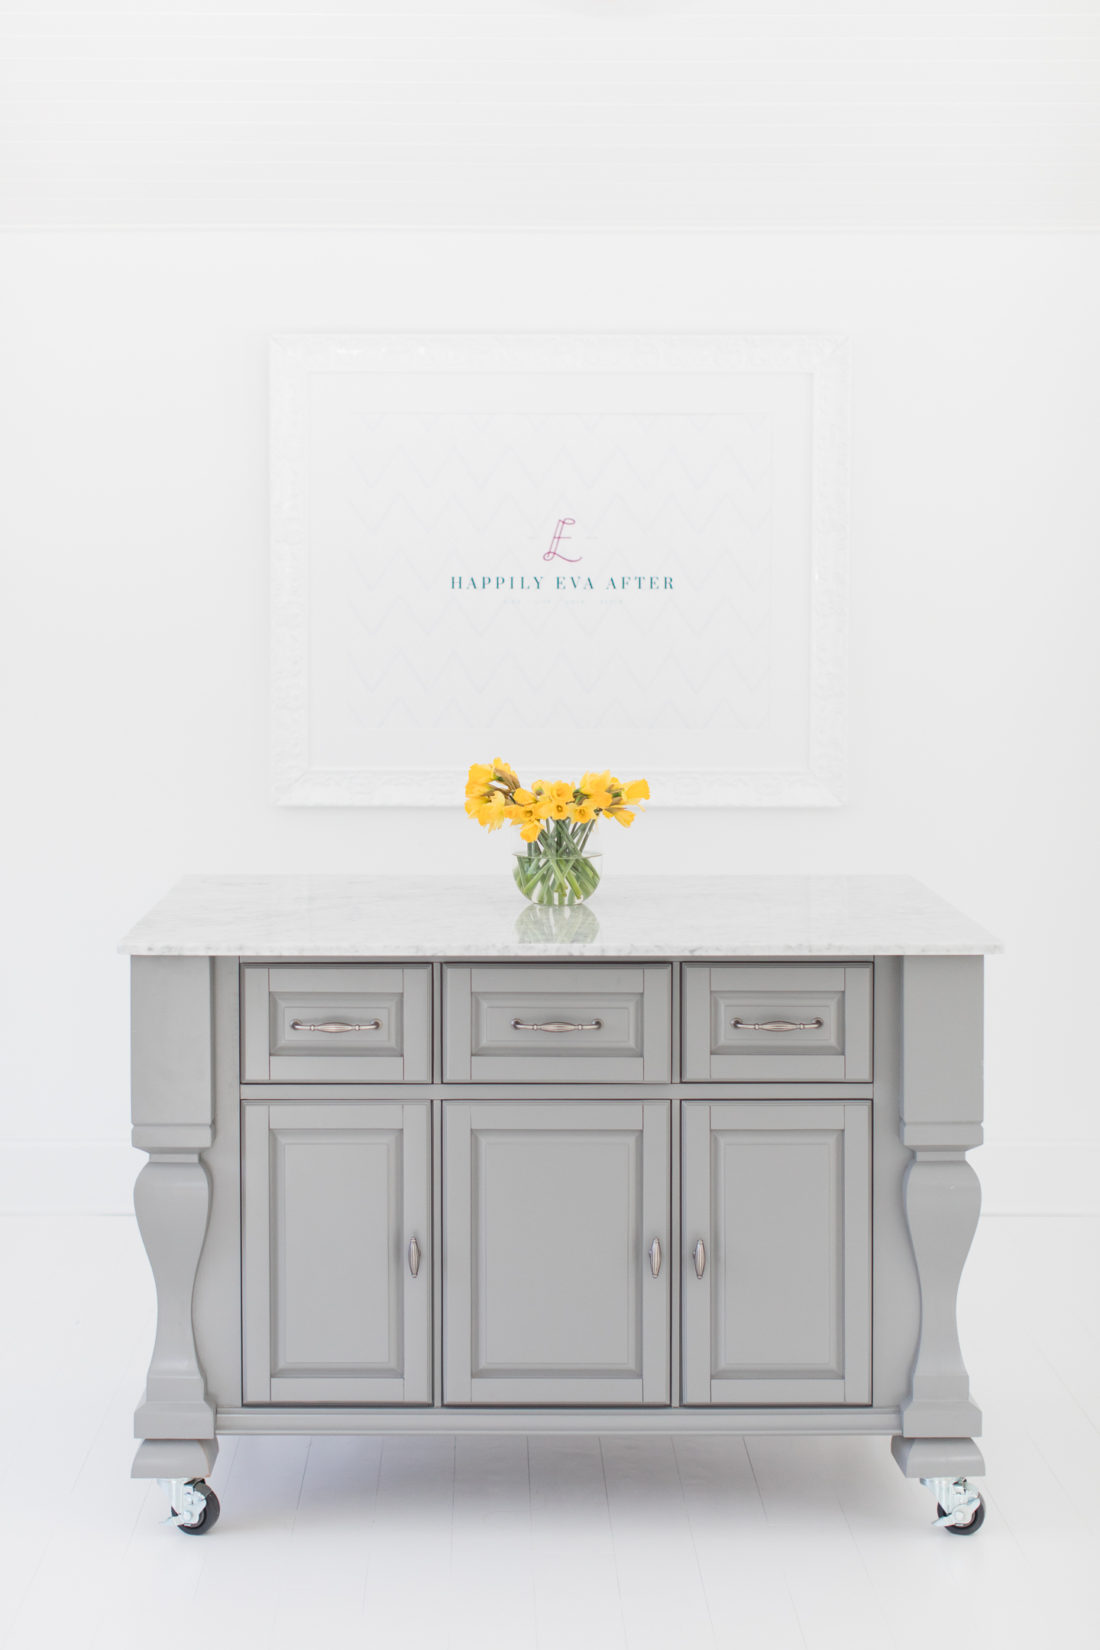 The marble topped island and framed logo in the Happily Eva After studio